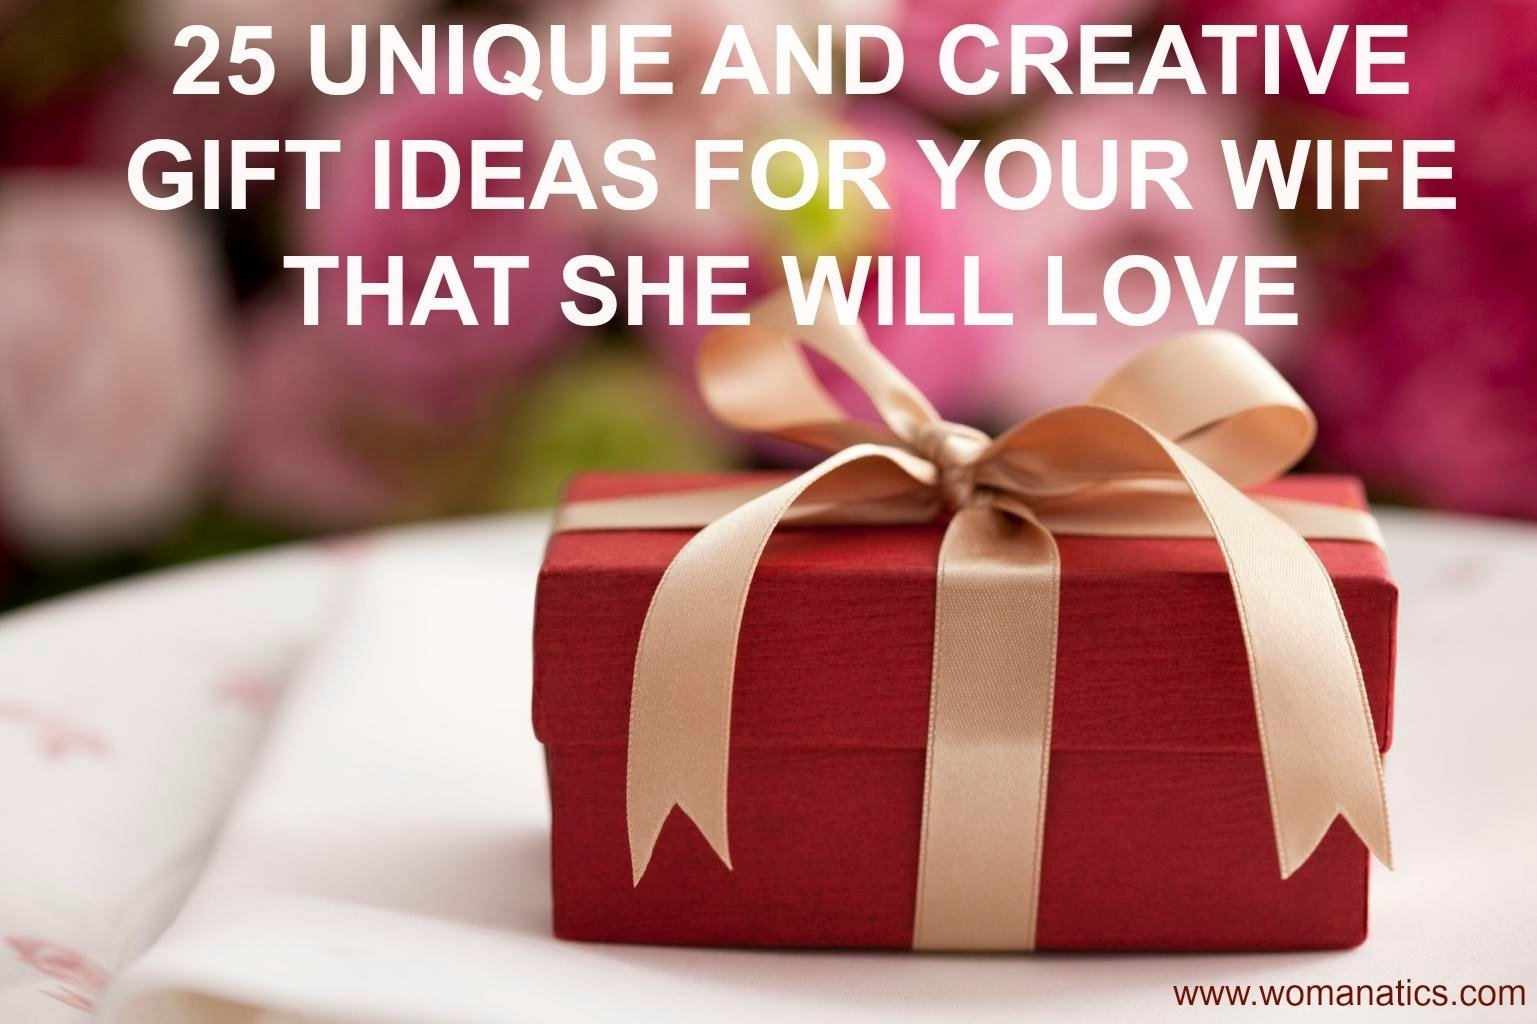 10 Nice Christmas Gift Ideas For Wife 25 unique and creative gift ideas for your wife that she will love 14 2021